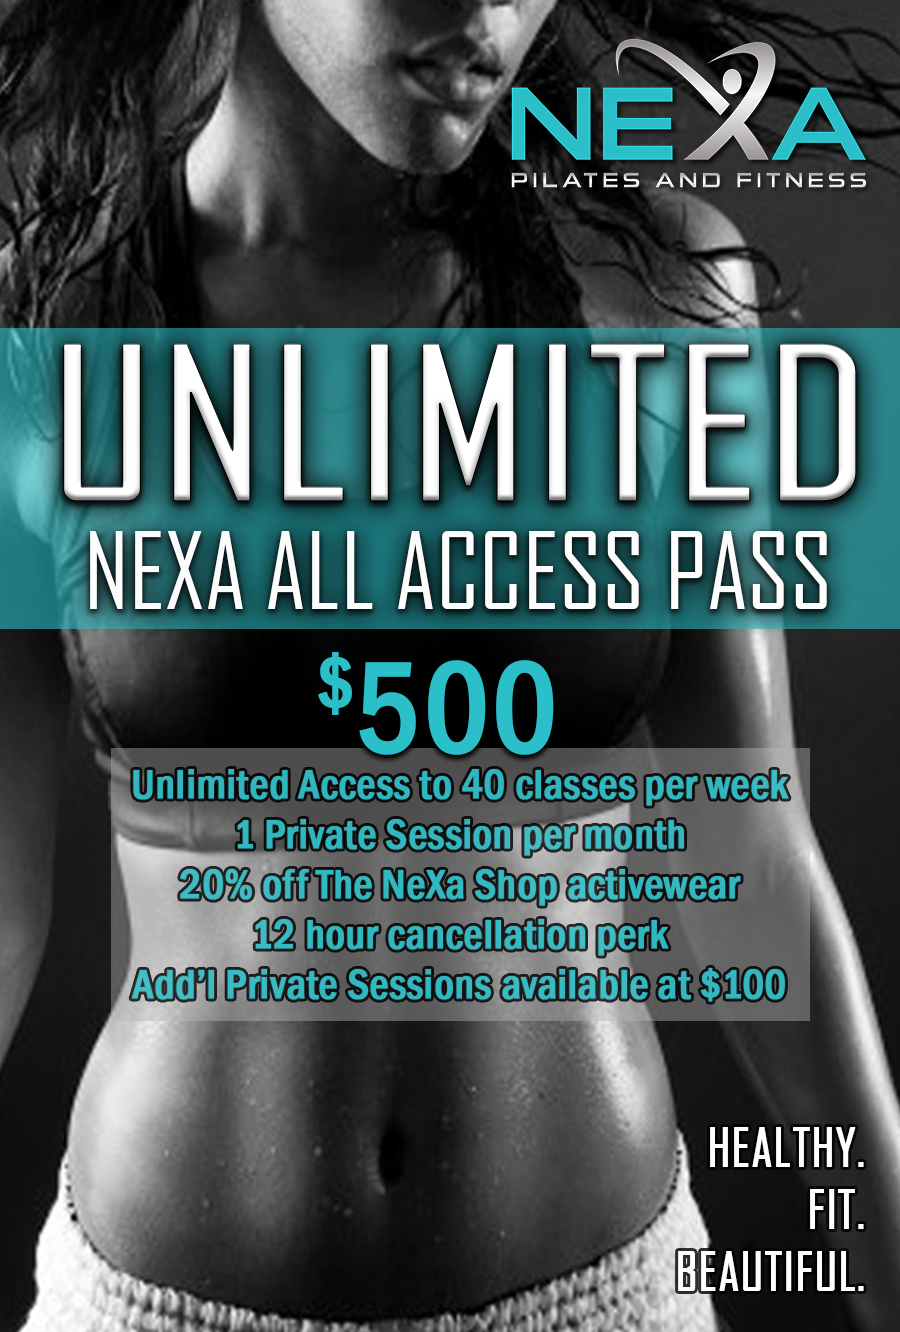 unlimited nexa all access pass - Attend an UNLIMITED amount of classes each day of the month!Access to over 40 classes per week.2 Private session included each billing cycleNo Commitment -- easy, no-fuss membership cancellation policy.20% off The NeXa Shop Merchandise purchased in studio only.12-hour cancellation policy – versus our normal 24-hour policy